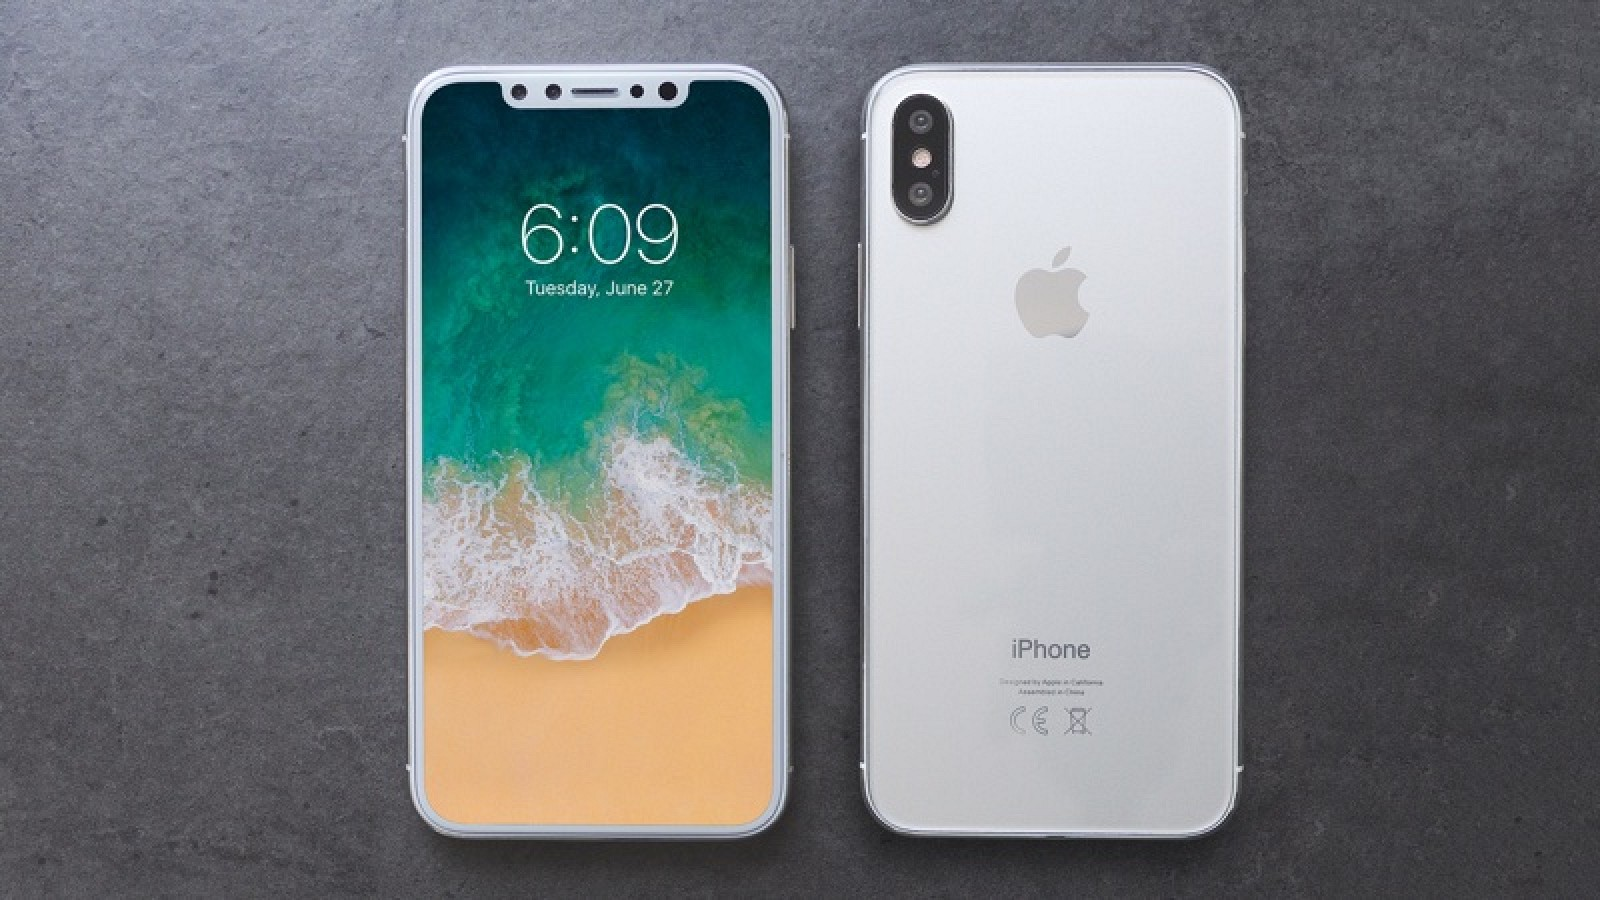 Foxconn Leaks iPhone 8 First Delivery